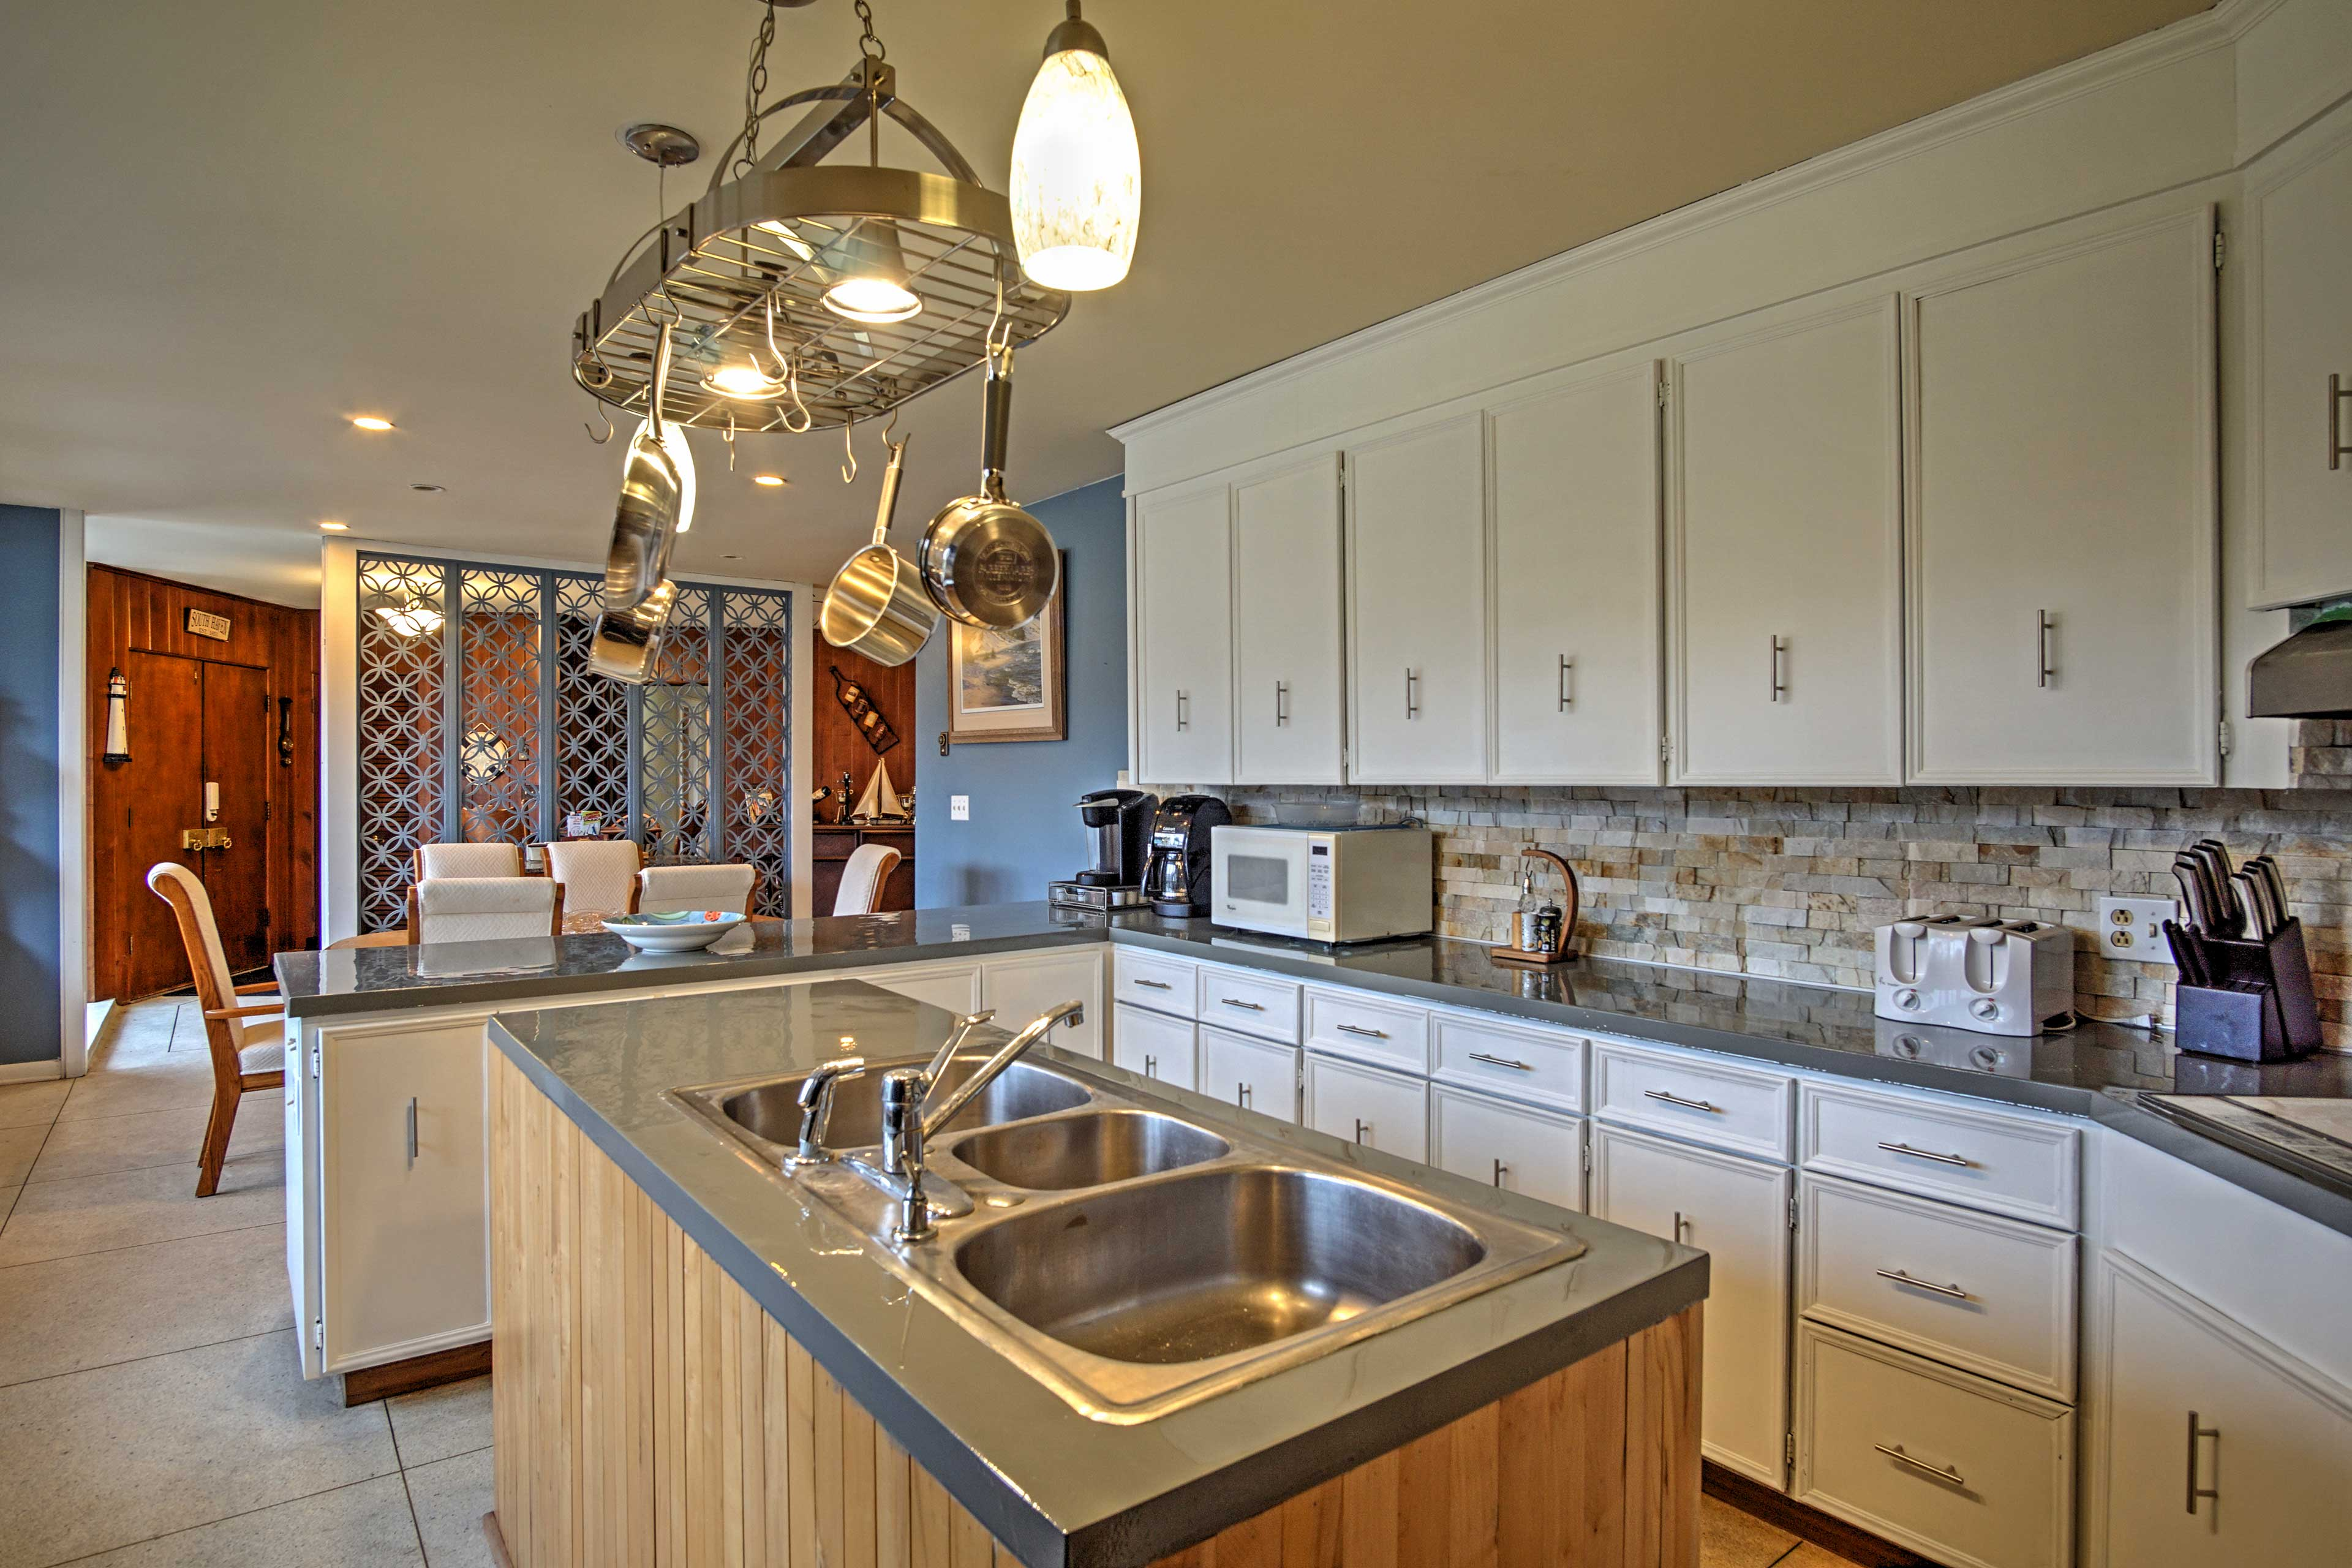 Prepare your favorite miles in the fully equipped kitchen.